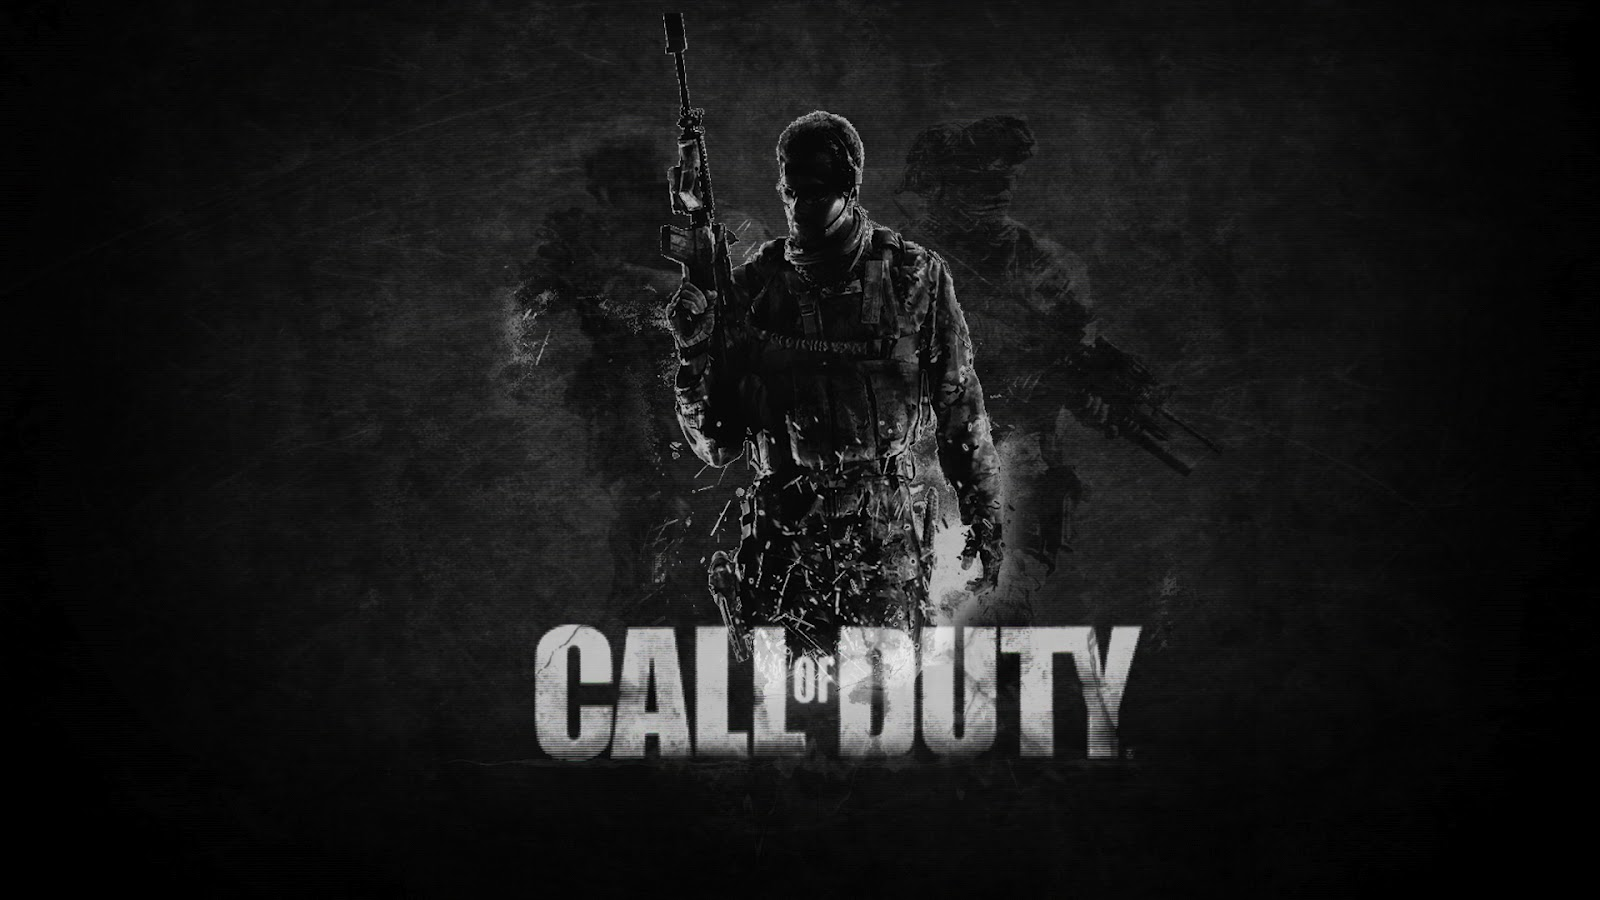 CALL OF DUTY WALLPAPERS ~ HD WALLPAPERS